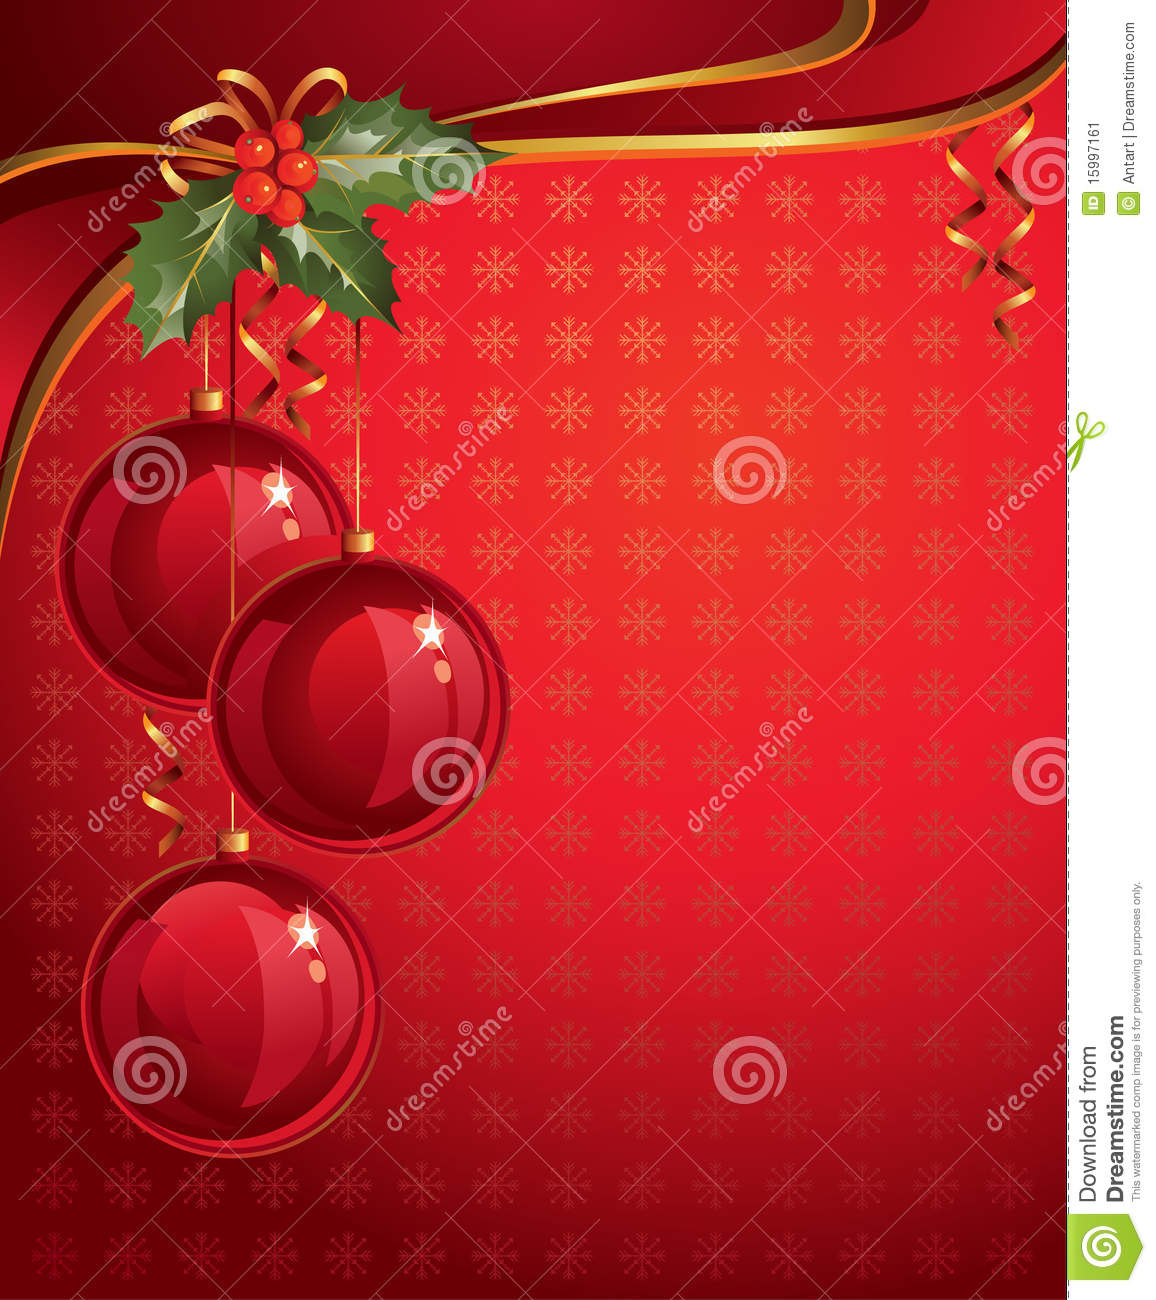 Vertical Red Christmas Backdrop Stock Image - Image: 15997161